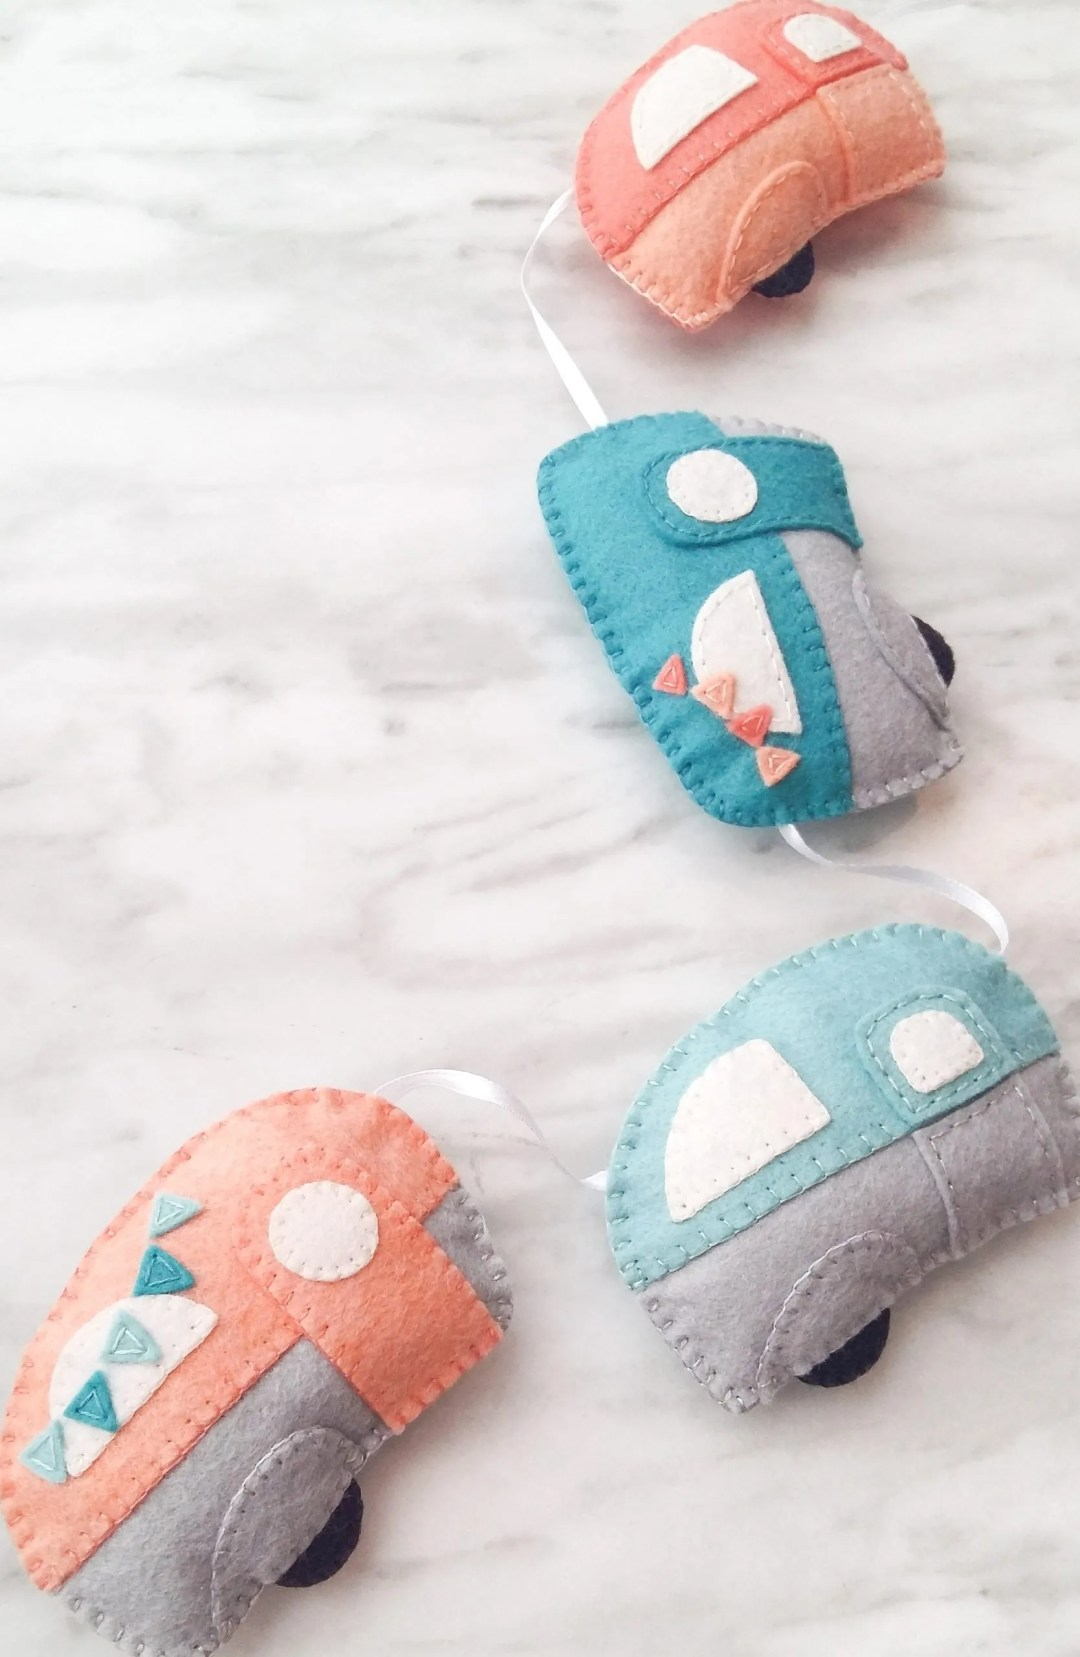 Cute DIY decor for a nursery or playroom. Free pattern and tutorial for these adorable DIY felt caravans. This project is a fantastic way to use up some felt scraps that are too precious to throw away! DIY wool felt trailers with free pattern. DIY kids decor ideas.